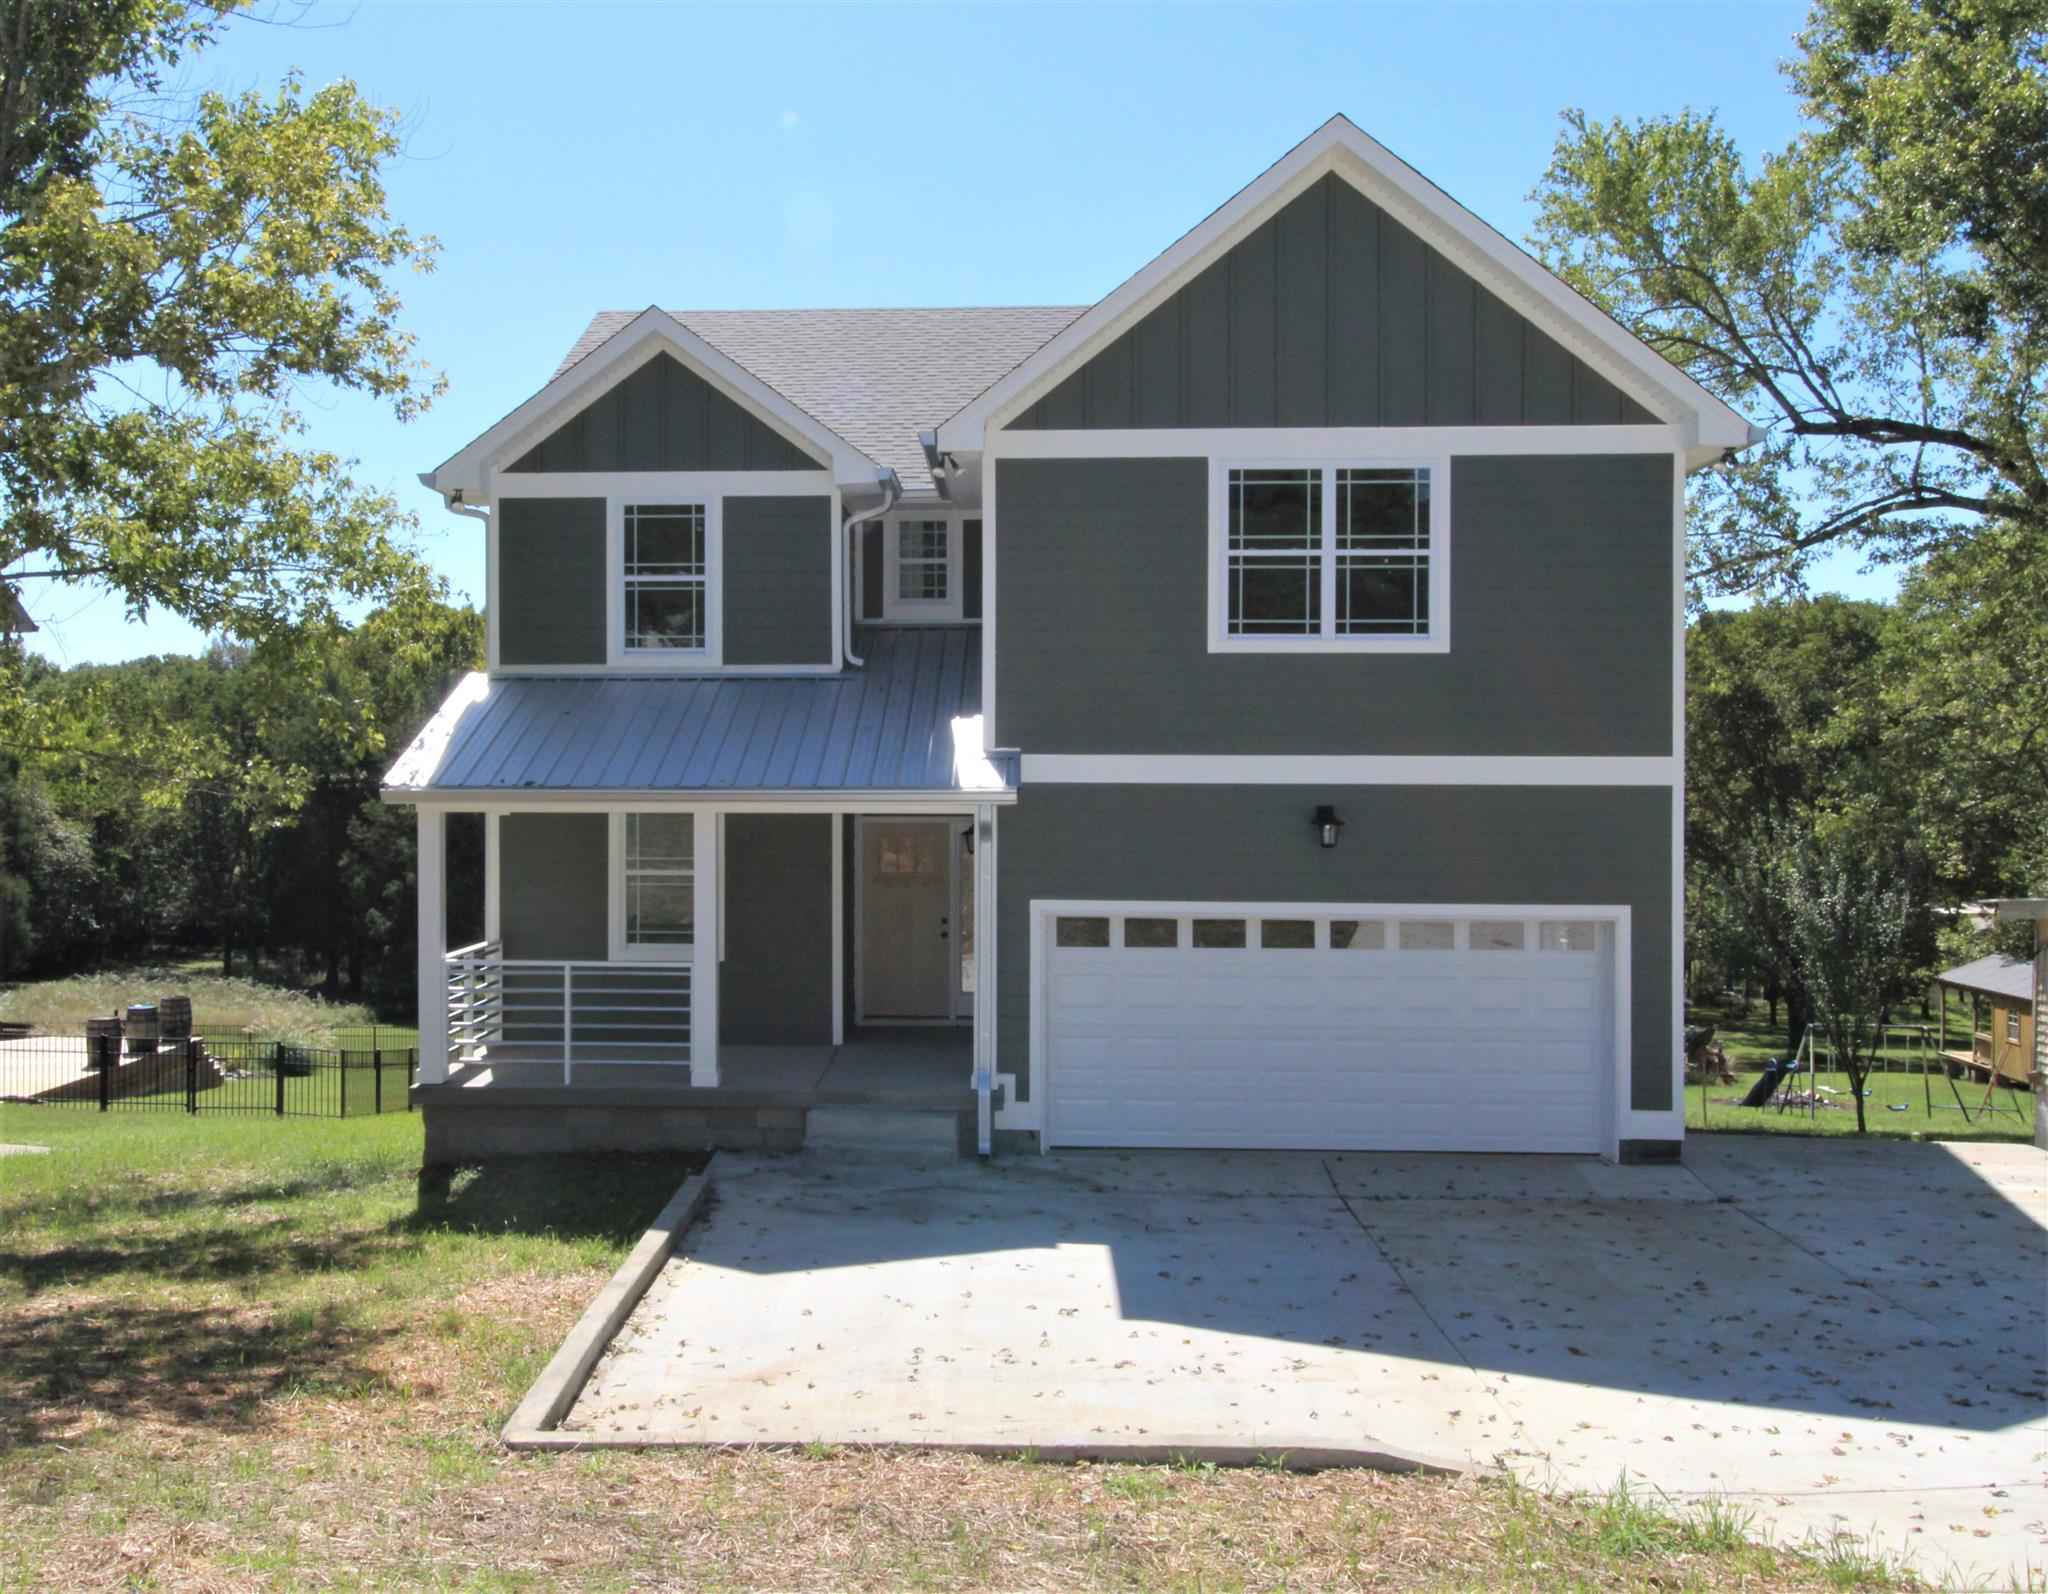 326 Twin Cove Dr, Lebanon in Wilson County County, TN 37087 Home for Sale